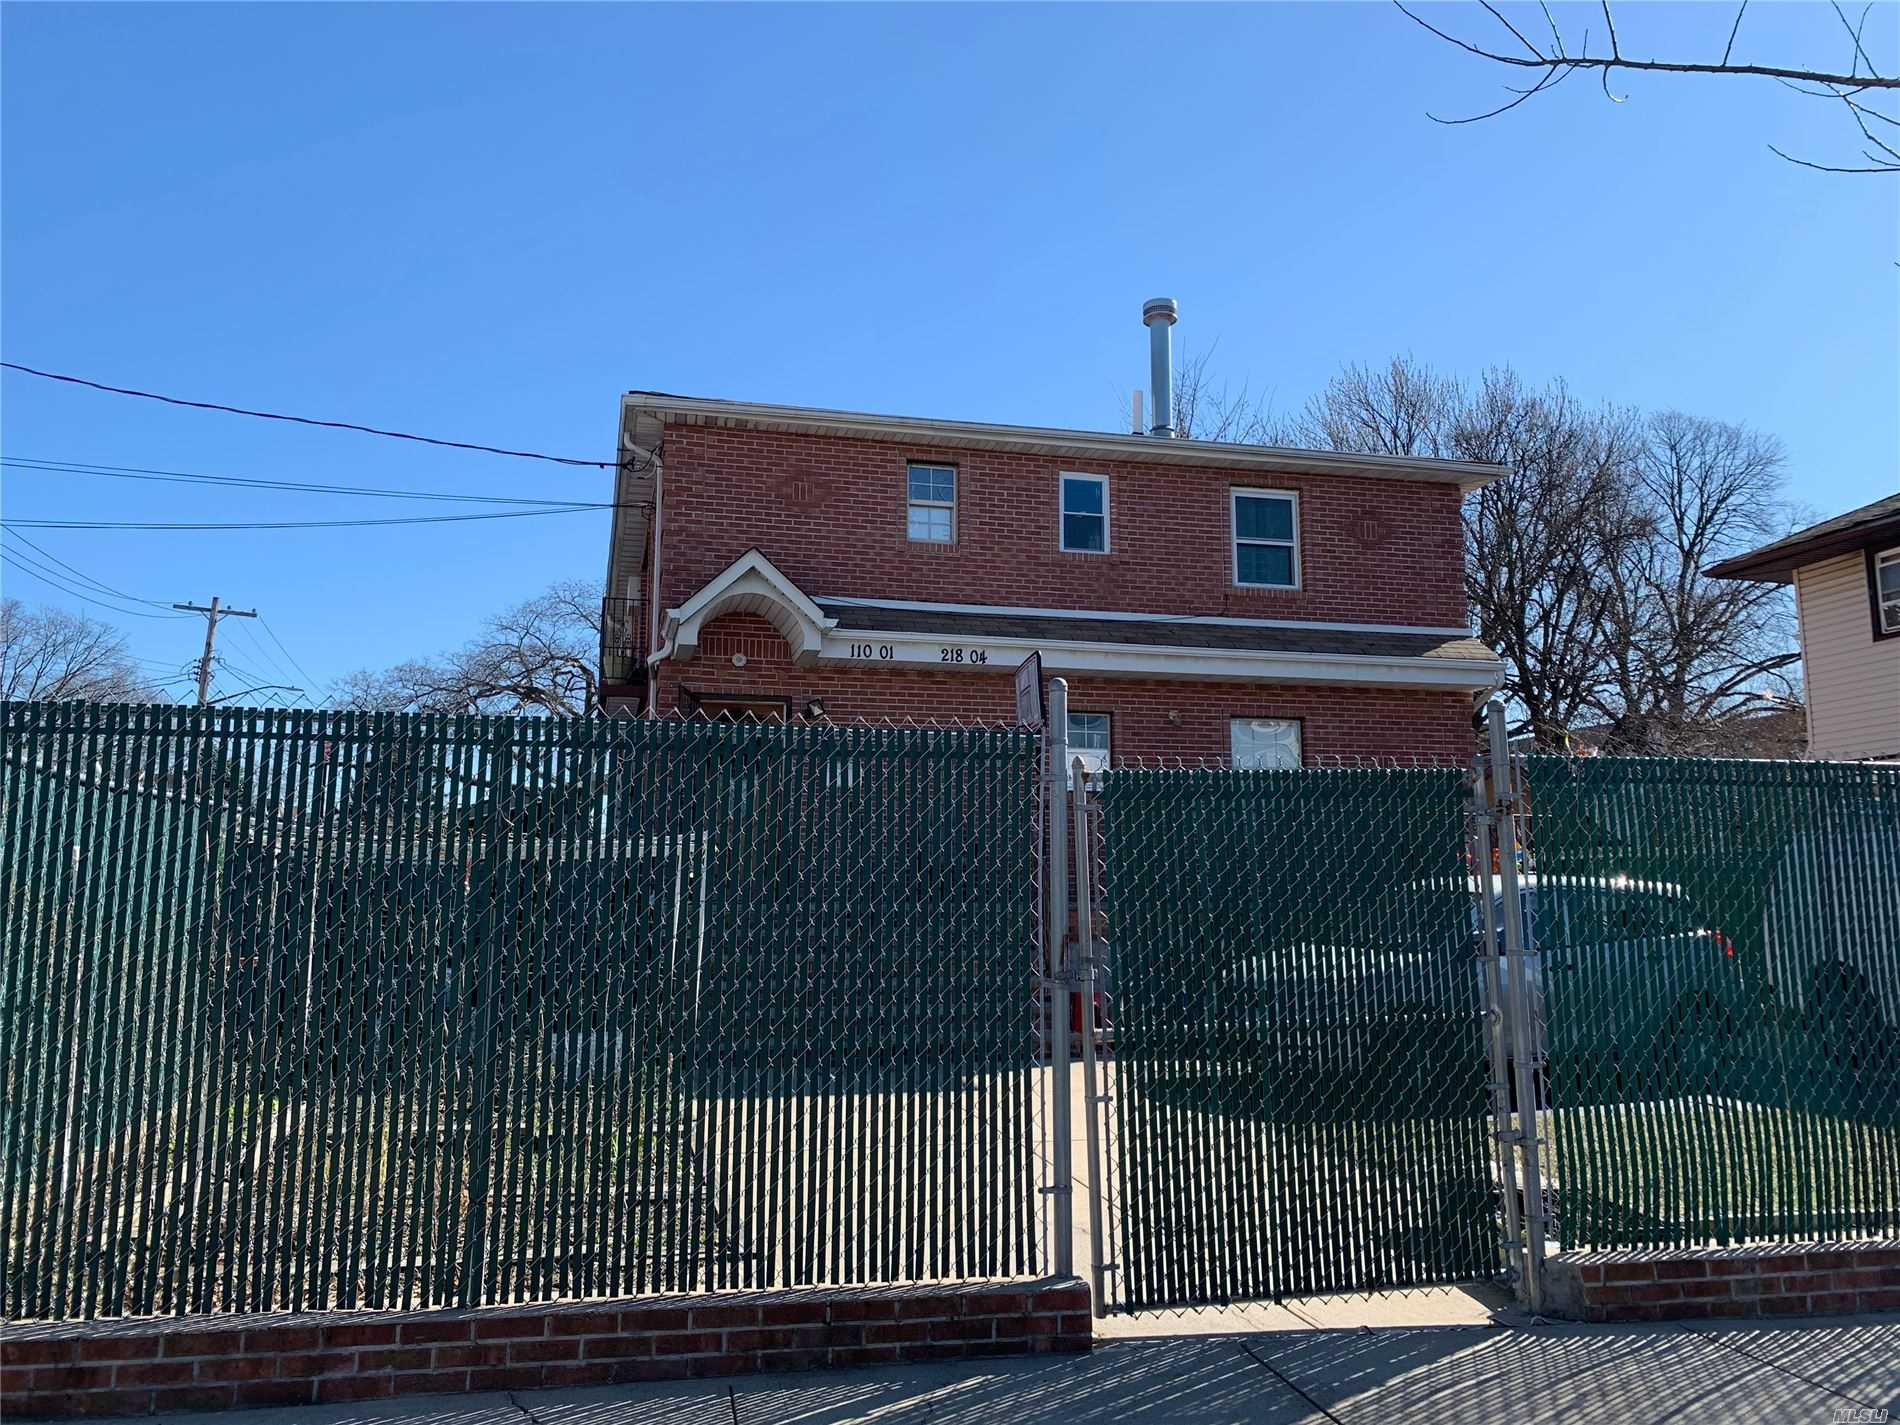 Property for sale at 218-04 110 Avenue, Queens Village,  New York 11429